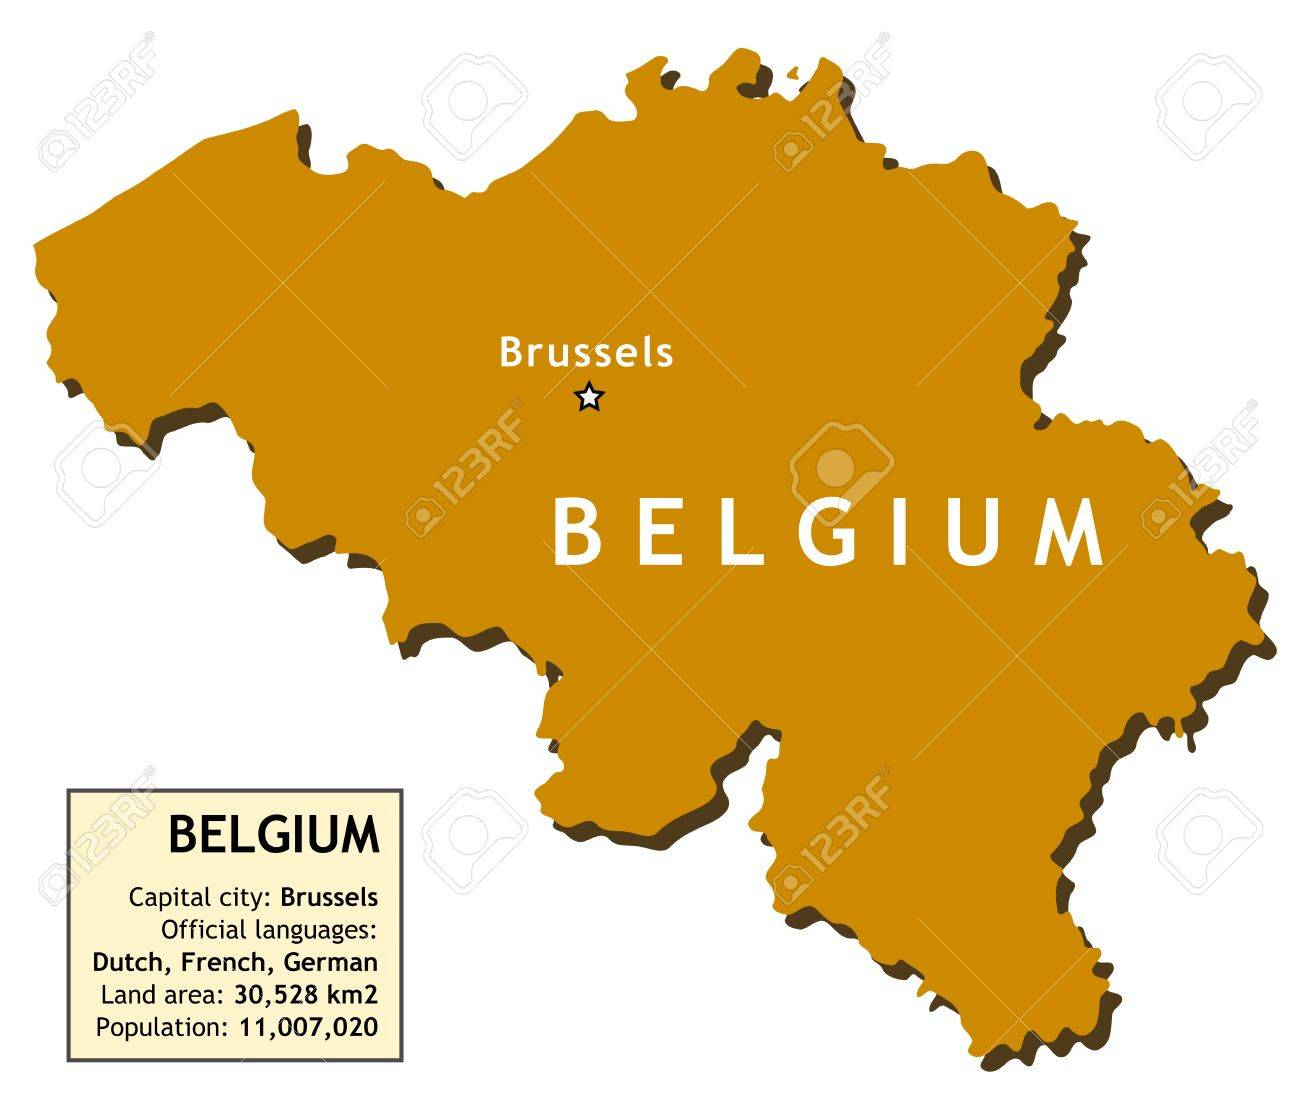 Map Of Belgium With Country Information Data Table Royalty Free